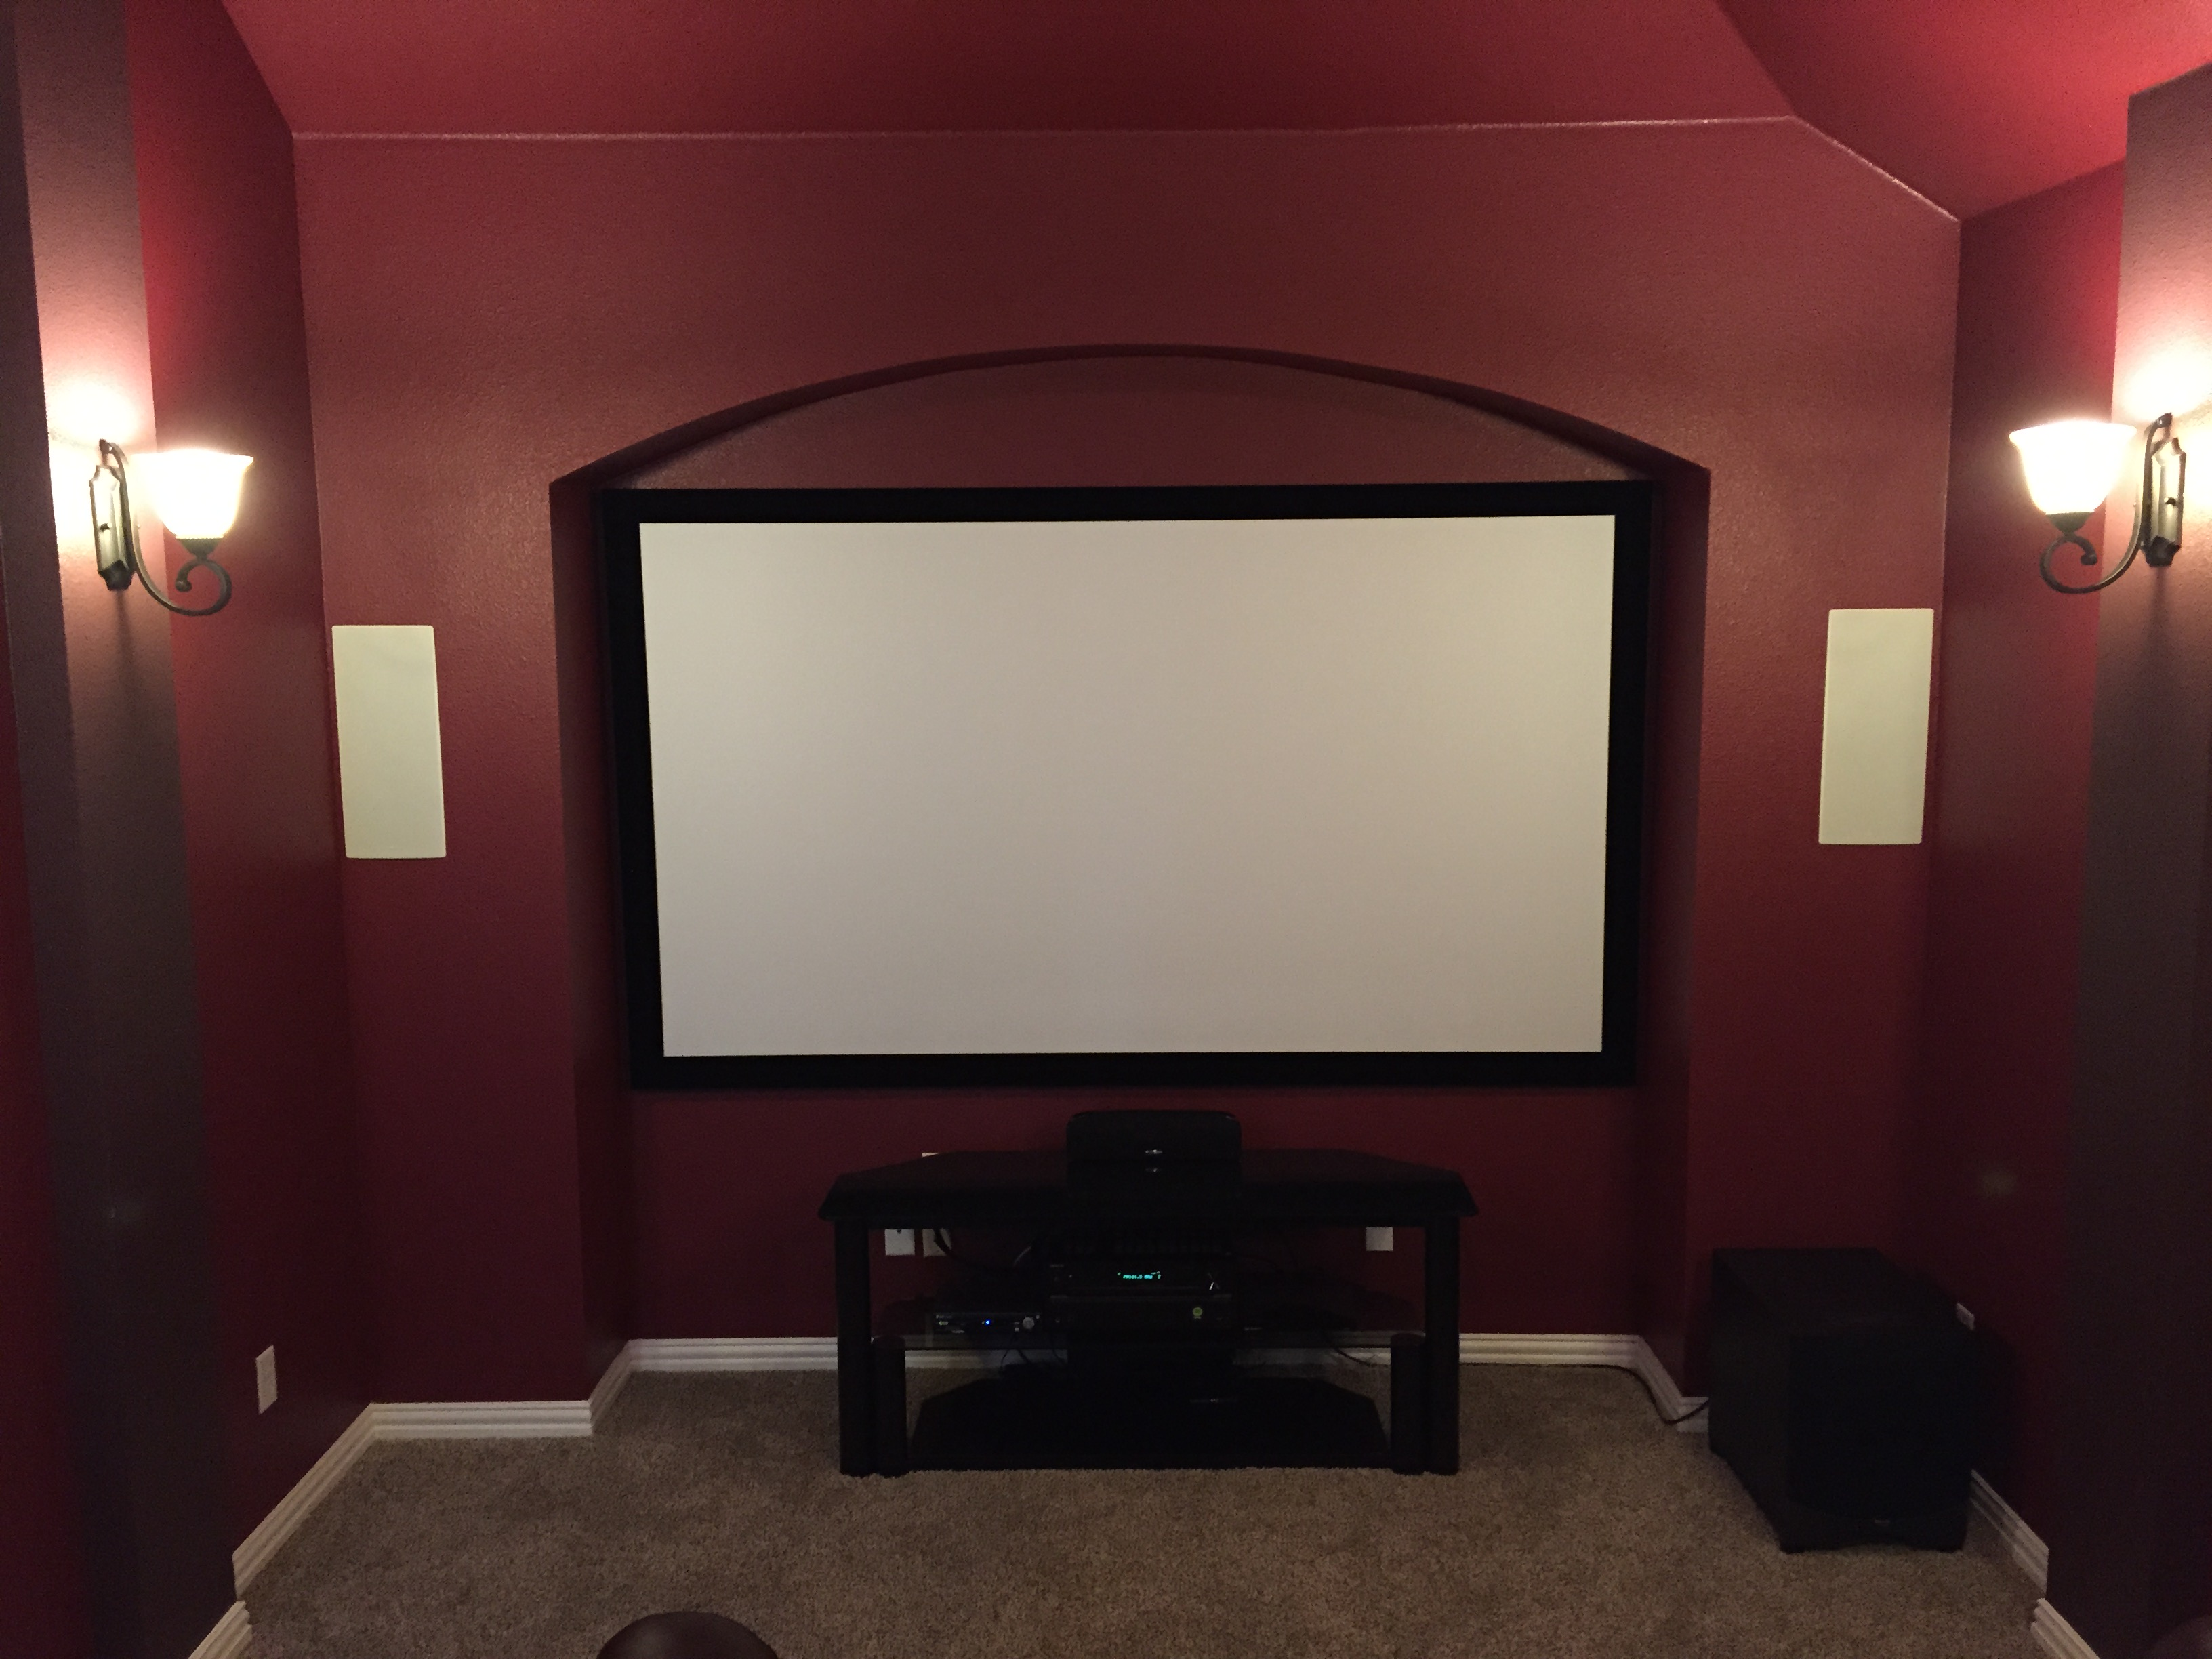 Home Entertainment Frisco Theater Center Stage Av Wiring A Projection Tv Media Room